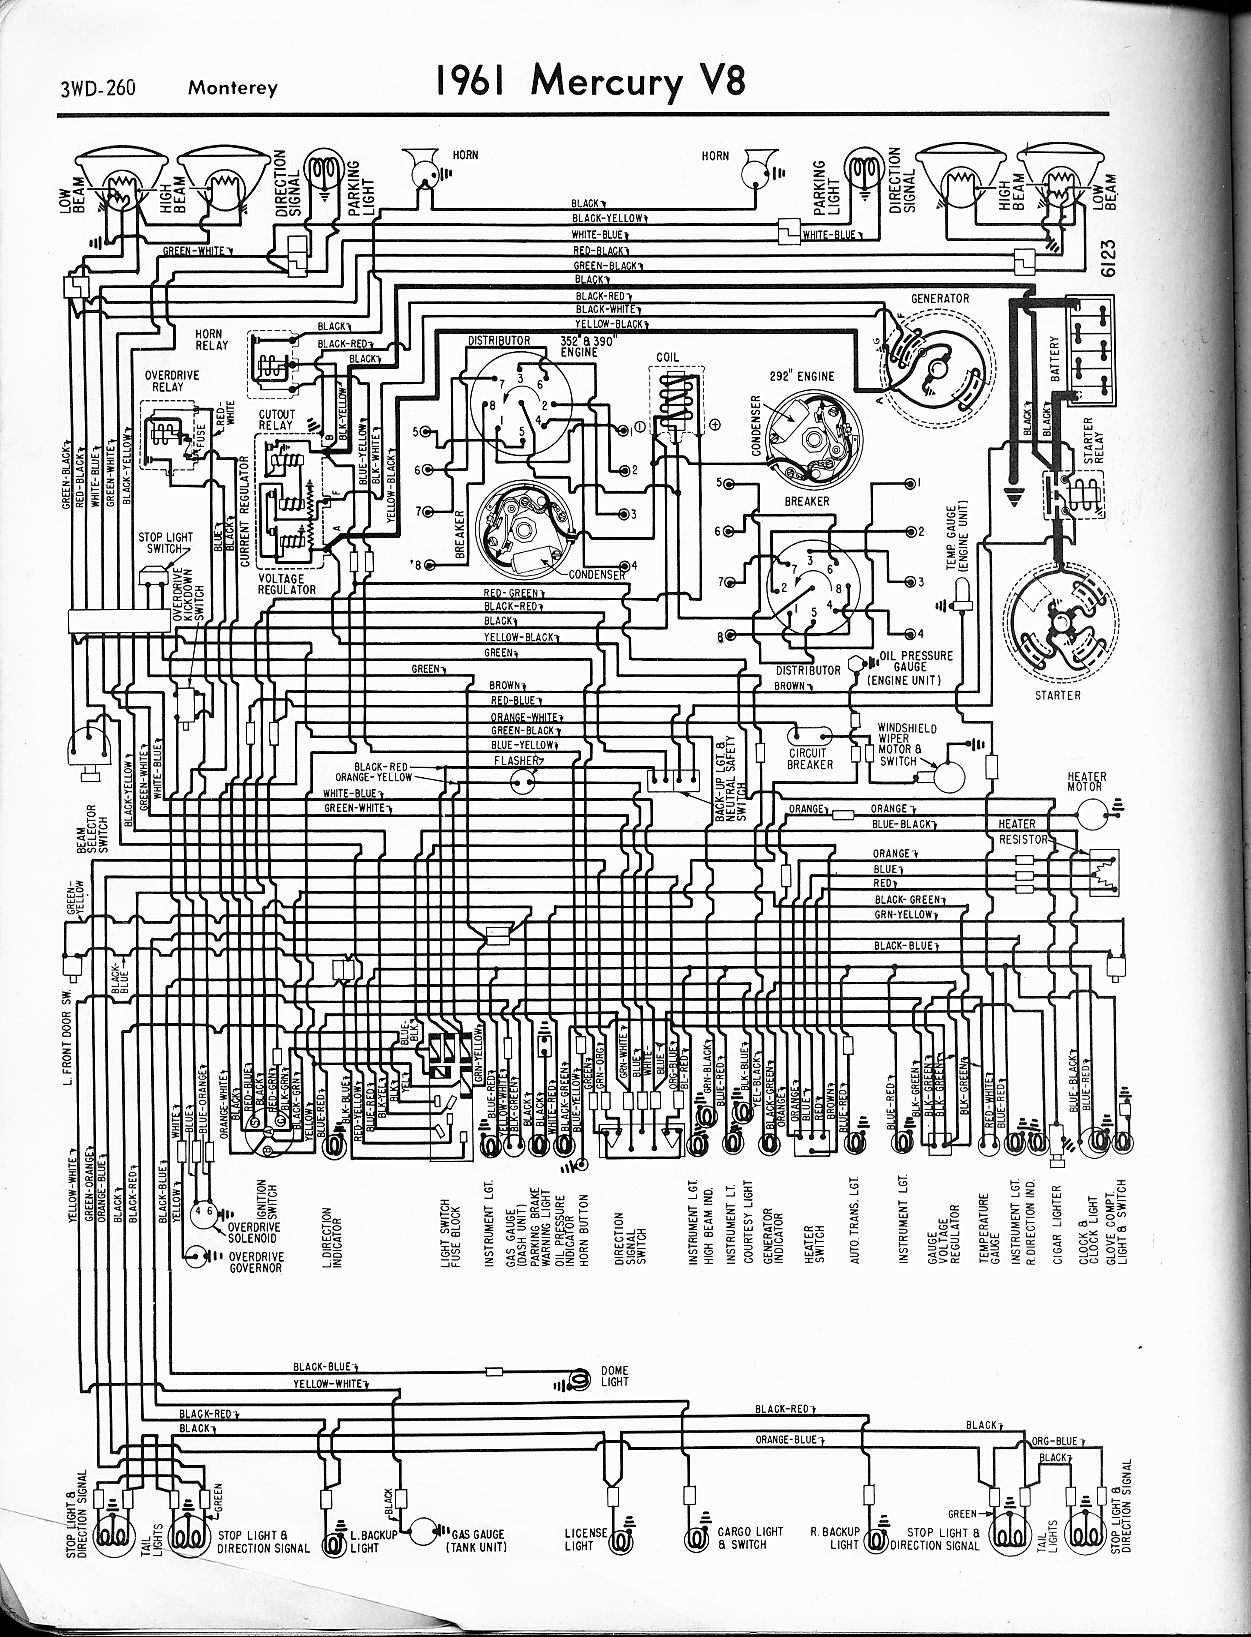 MWire5765 260 mercury wiring diagrams the old car manual project 1968 ford wiring diagrams at arjmand.co